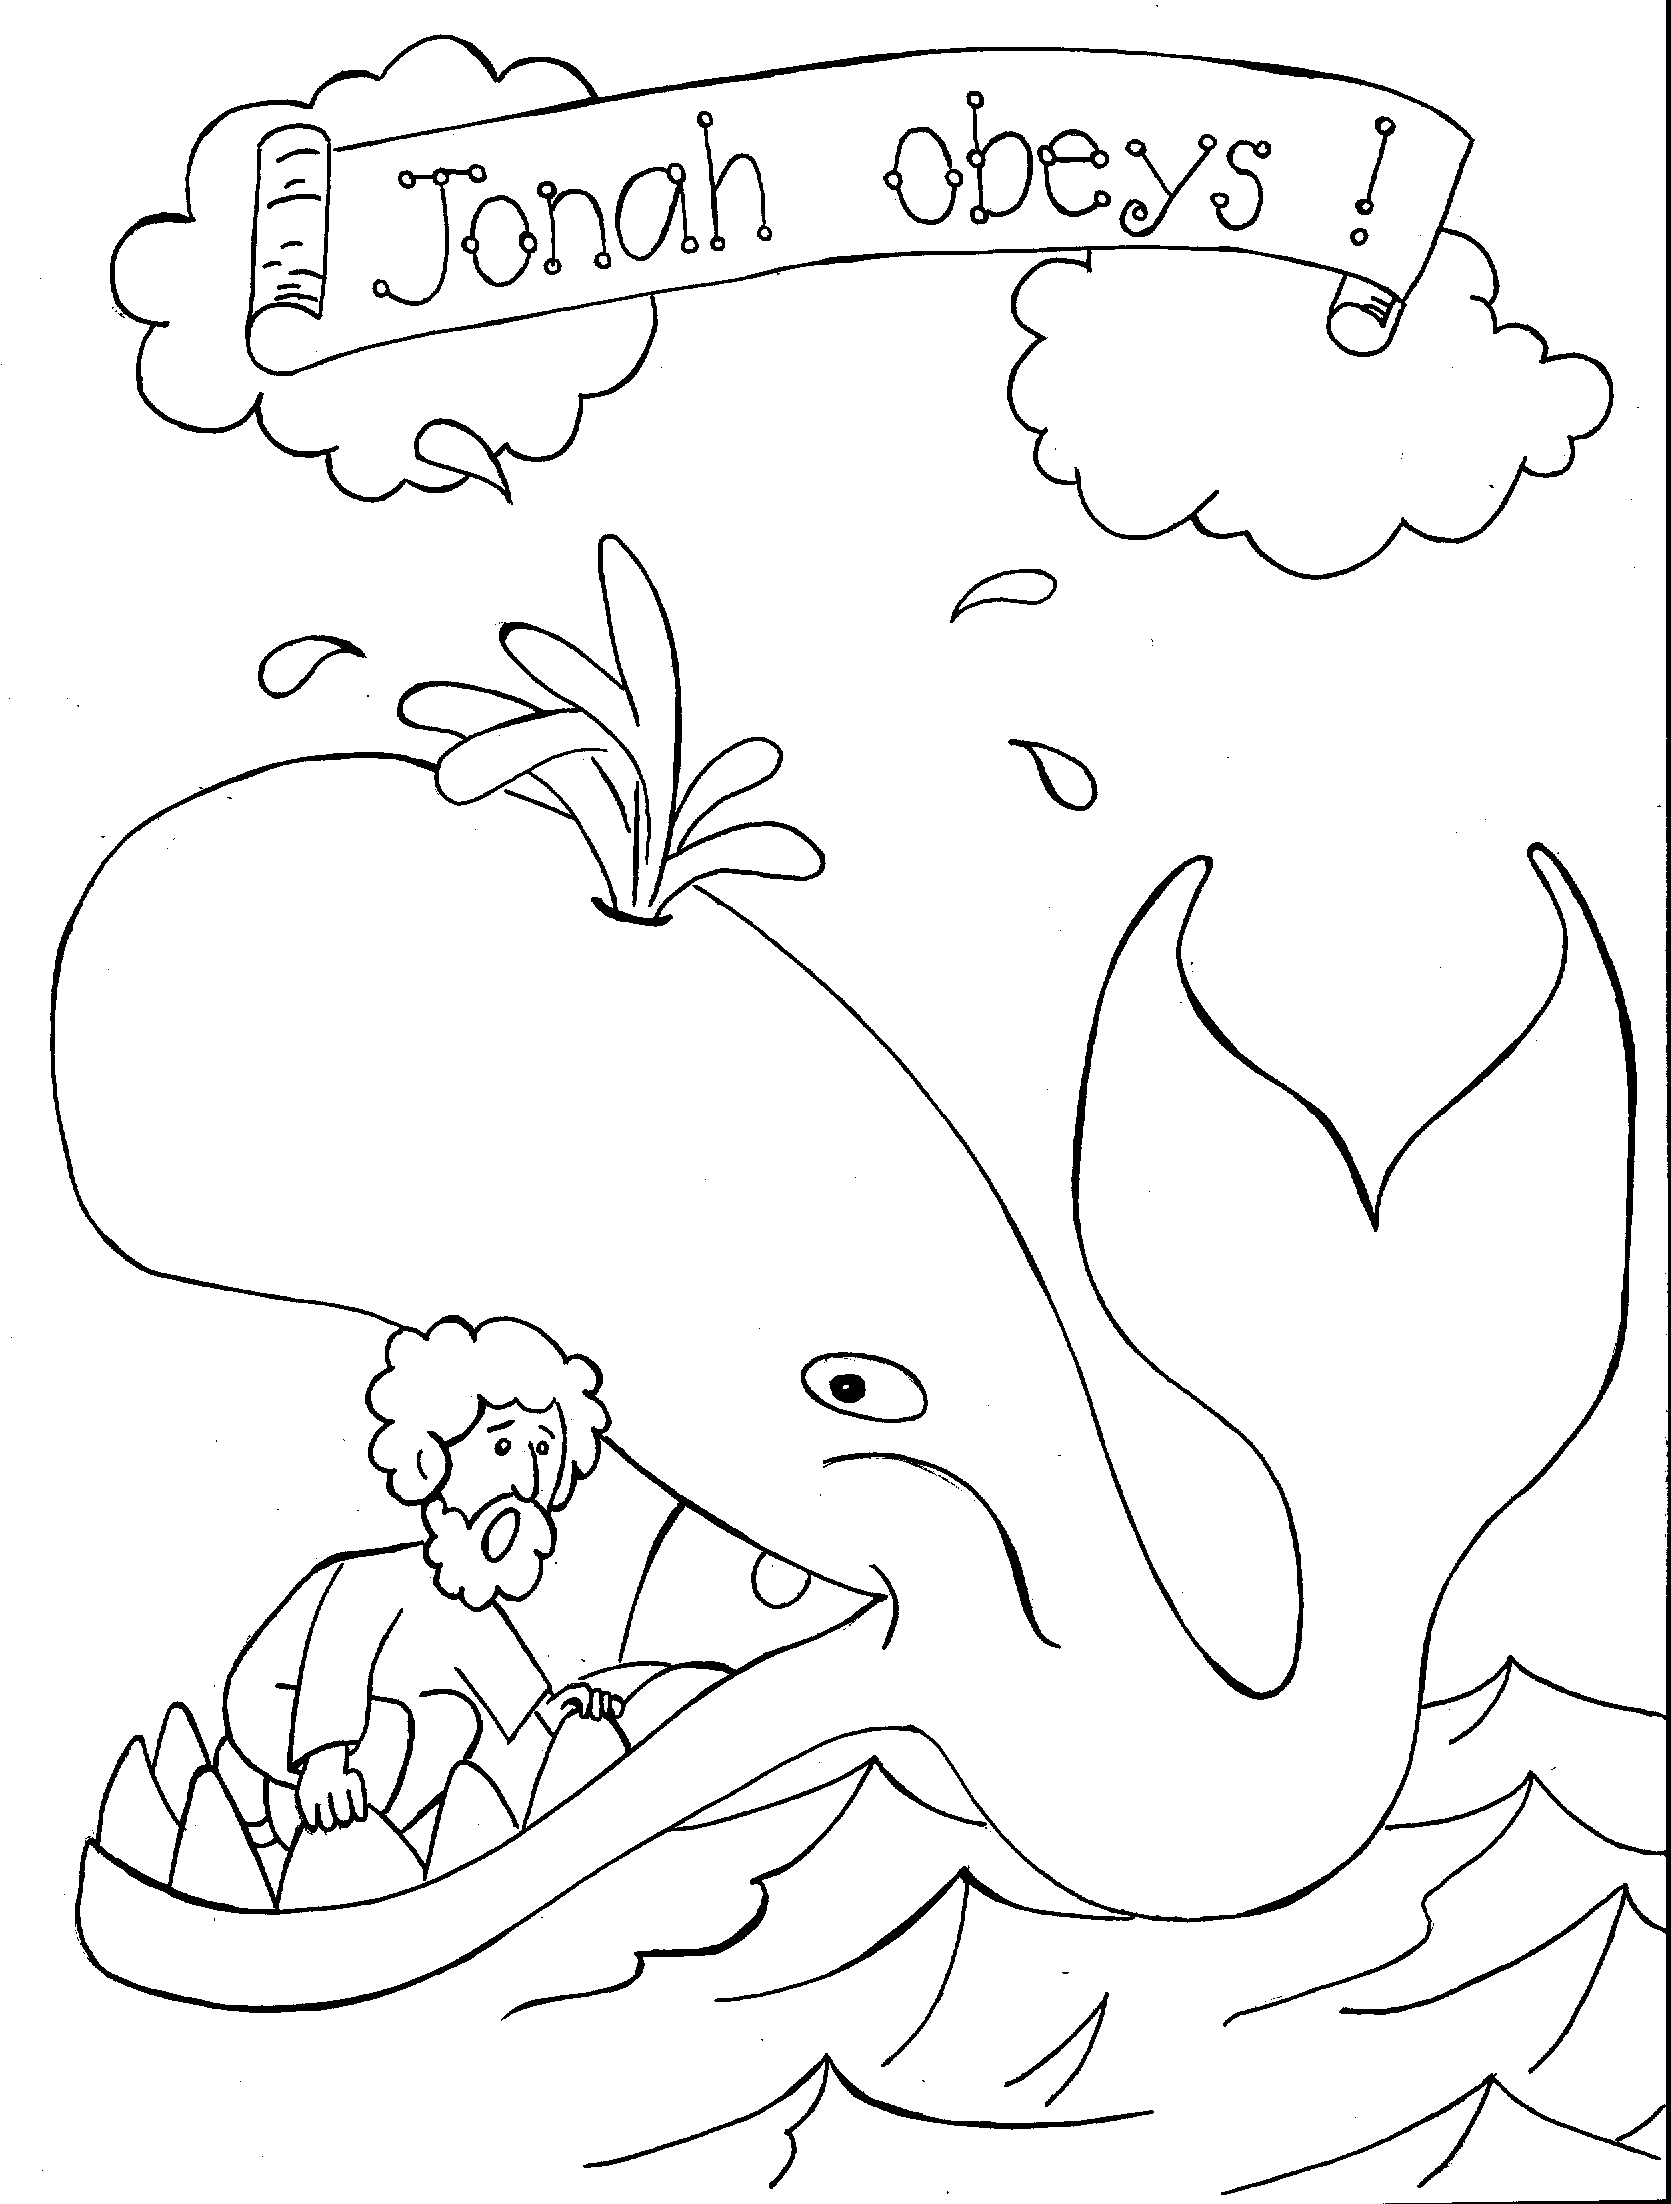 jonah coloring pages printable jonah swallowed by the whale coloring pages black and pages coloring jonah printable